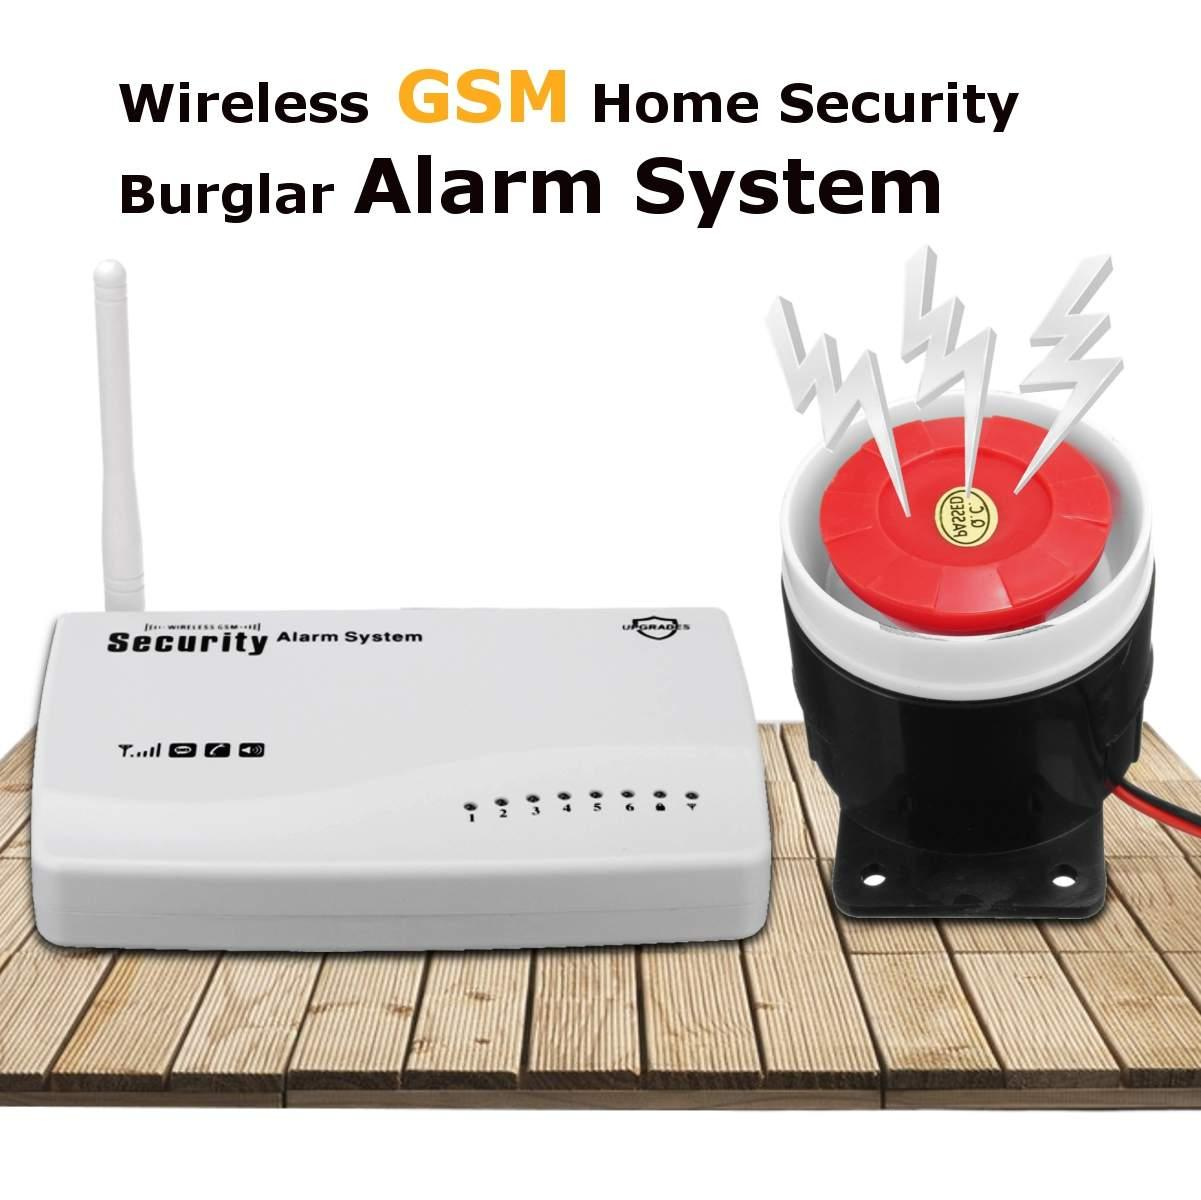 Jiuch YA-300-GSM WiFi GSM Wireless Alarm System Home Security Infrared Door IR Sensor Detector With Siren Remote Control